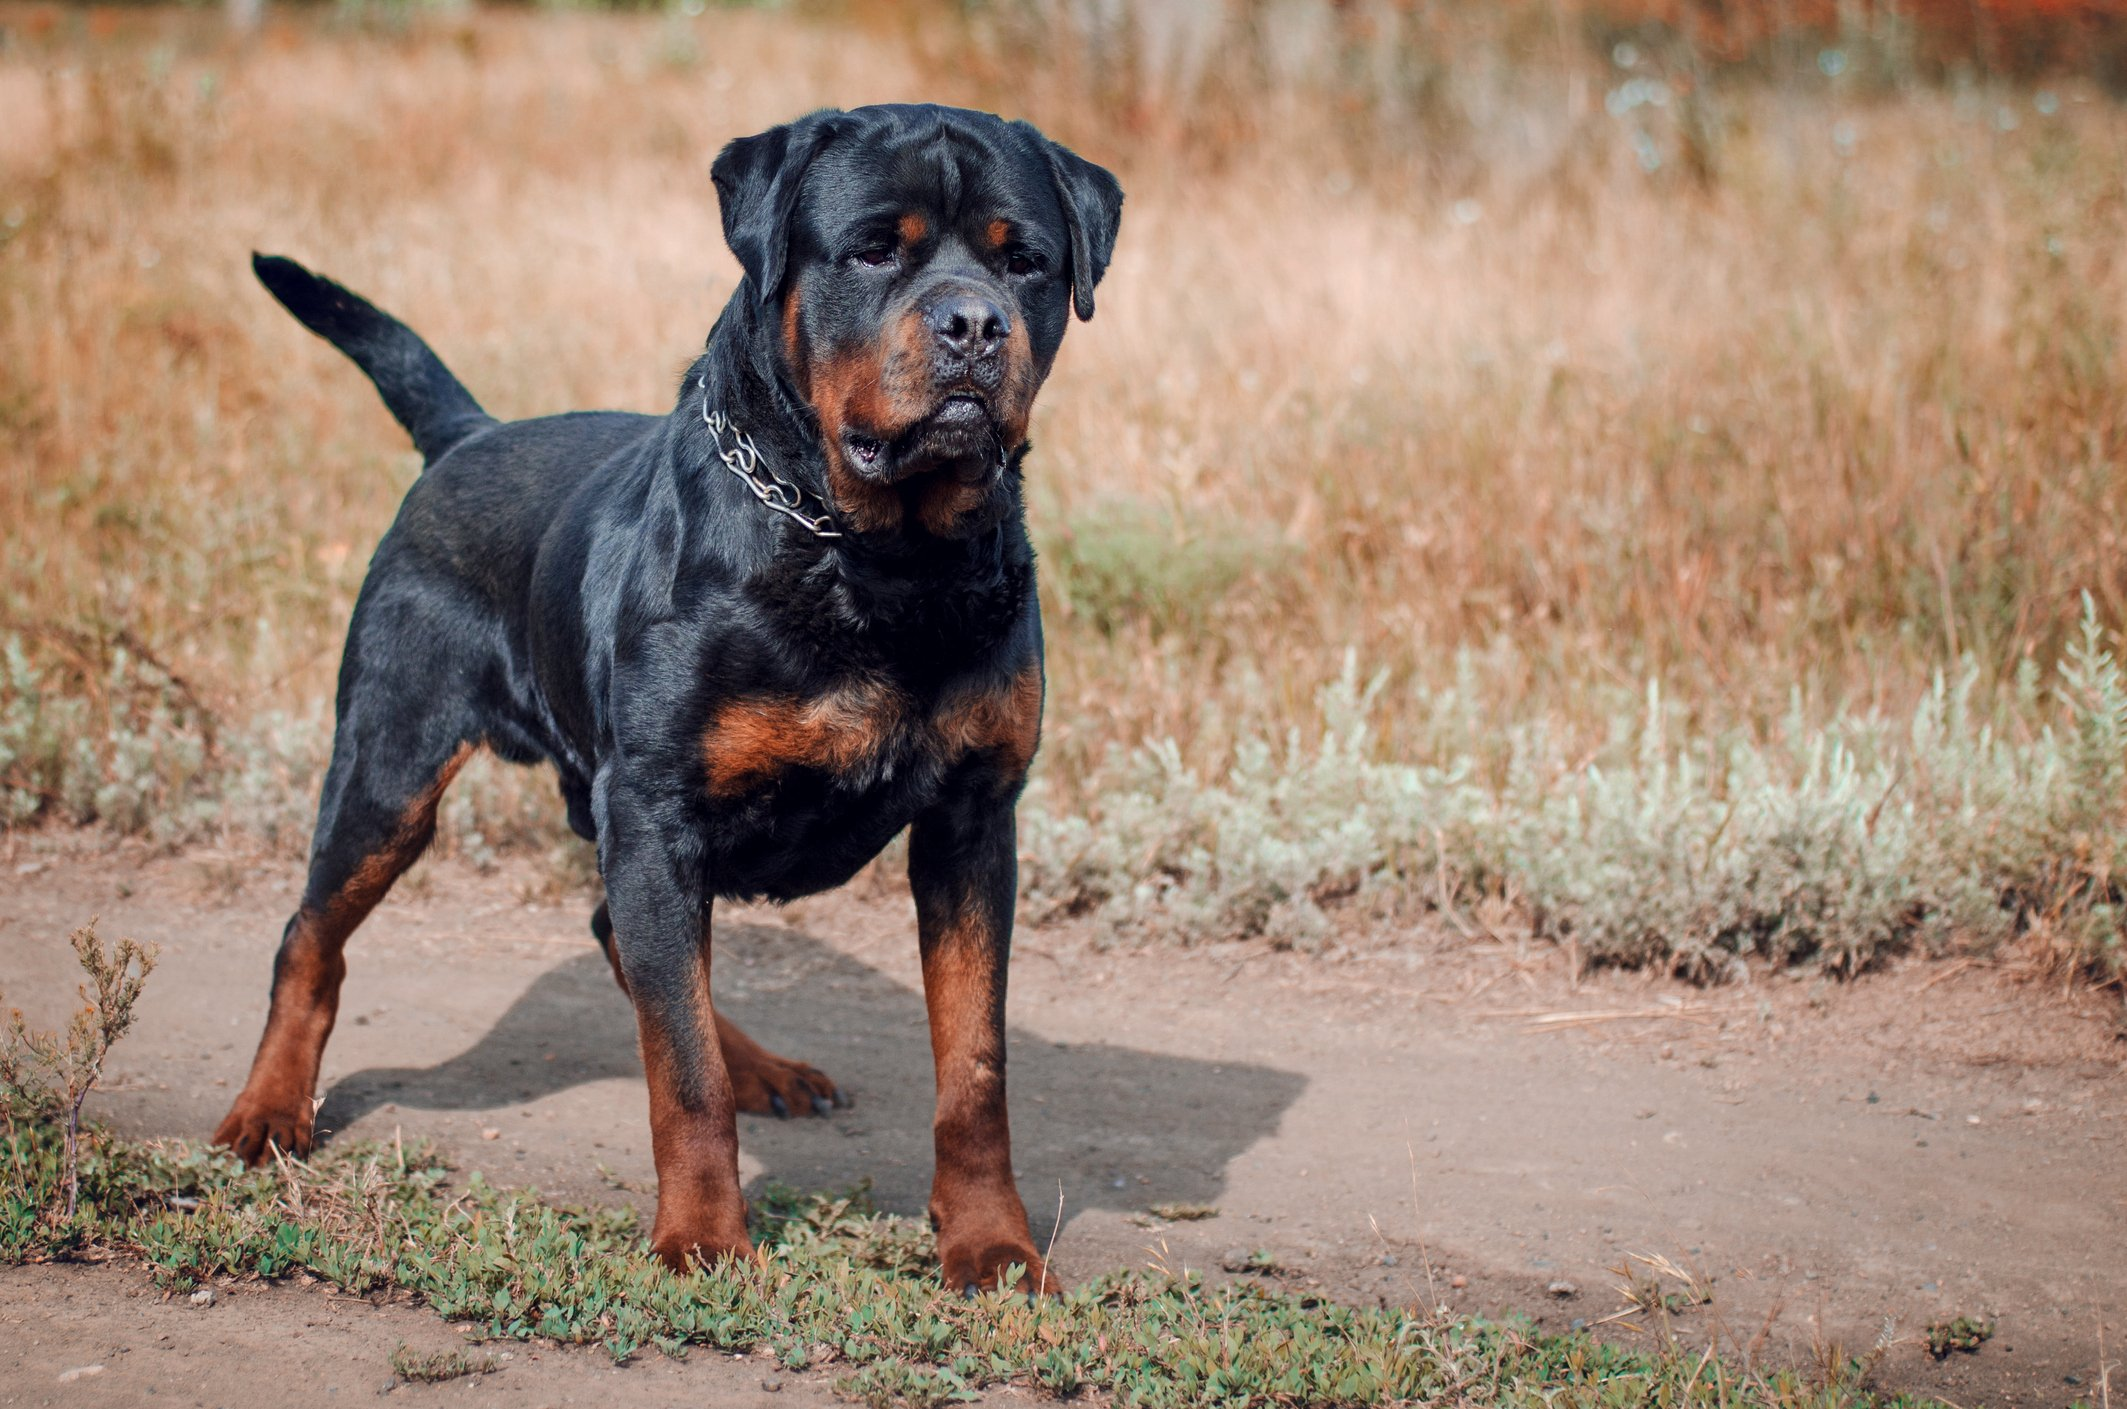 #9 Rottweiler: this one is little bored but one the most trainable dog breeds